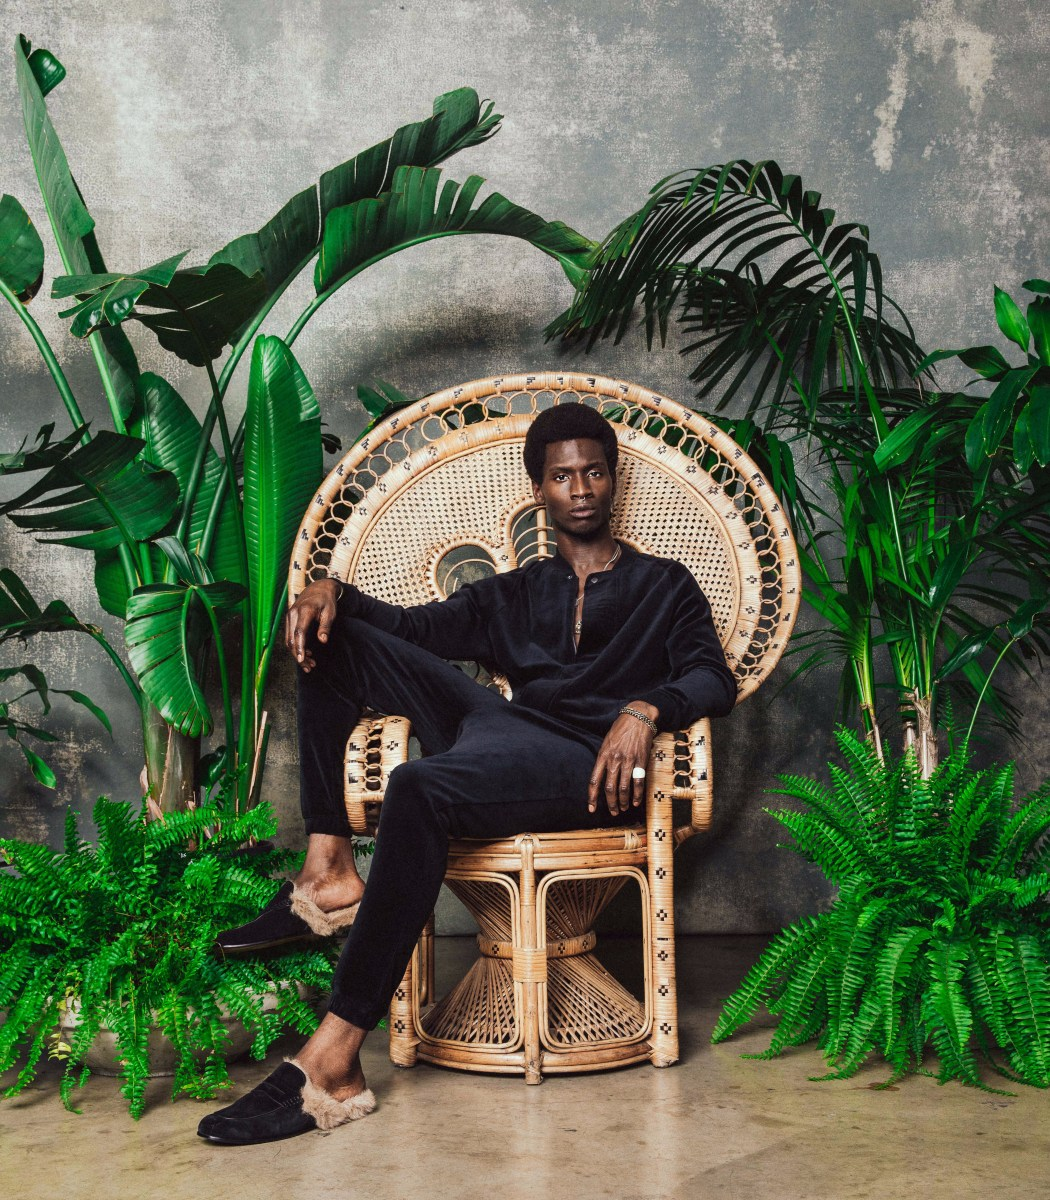 """Just Another Day in The Jungle"": Adonis Bosso on Releasing His First Single"